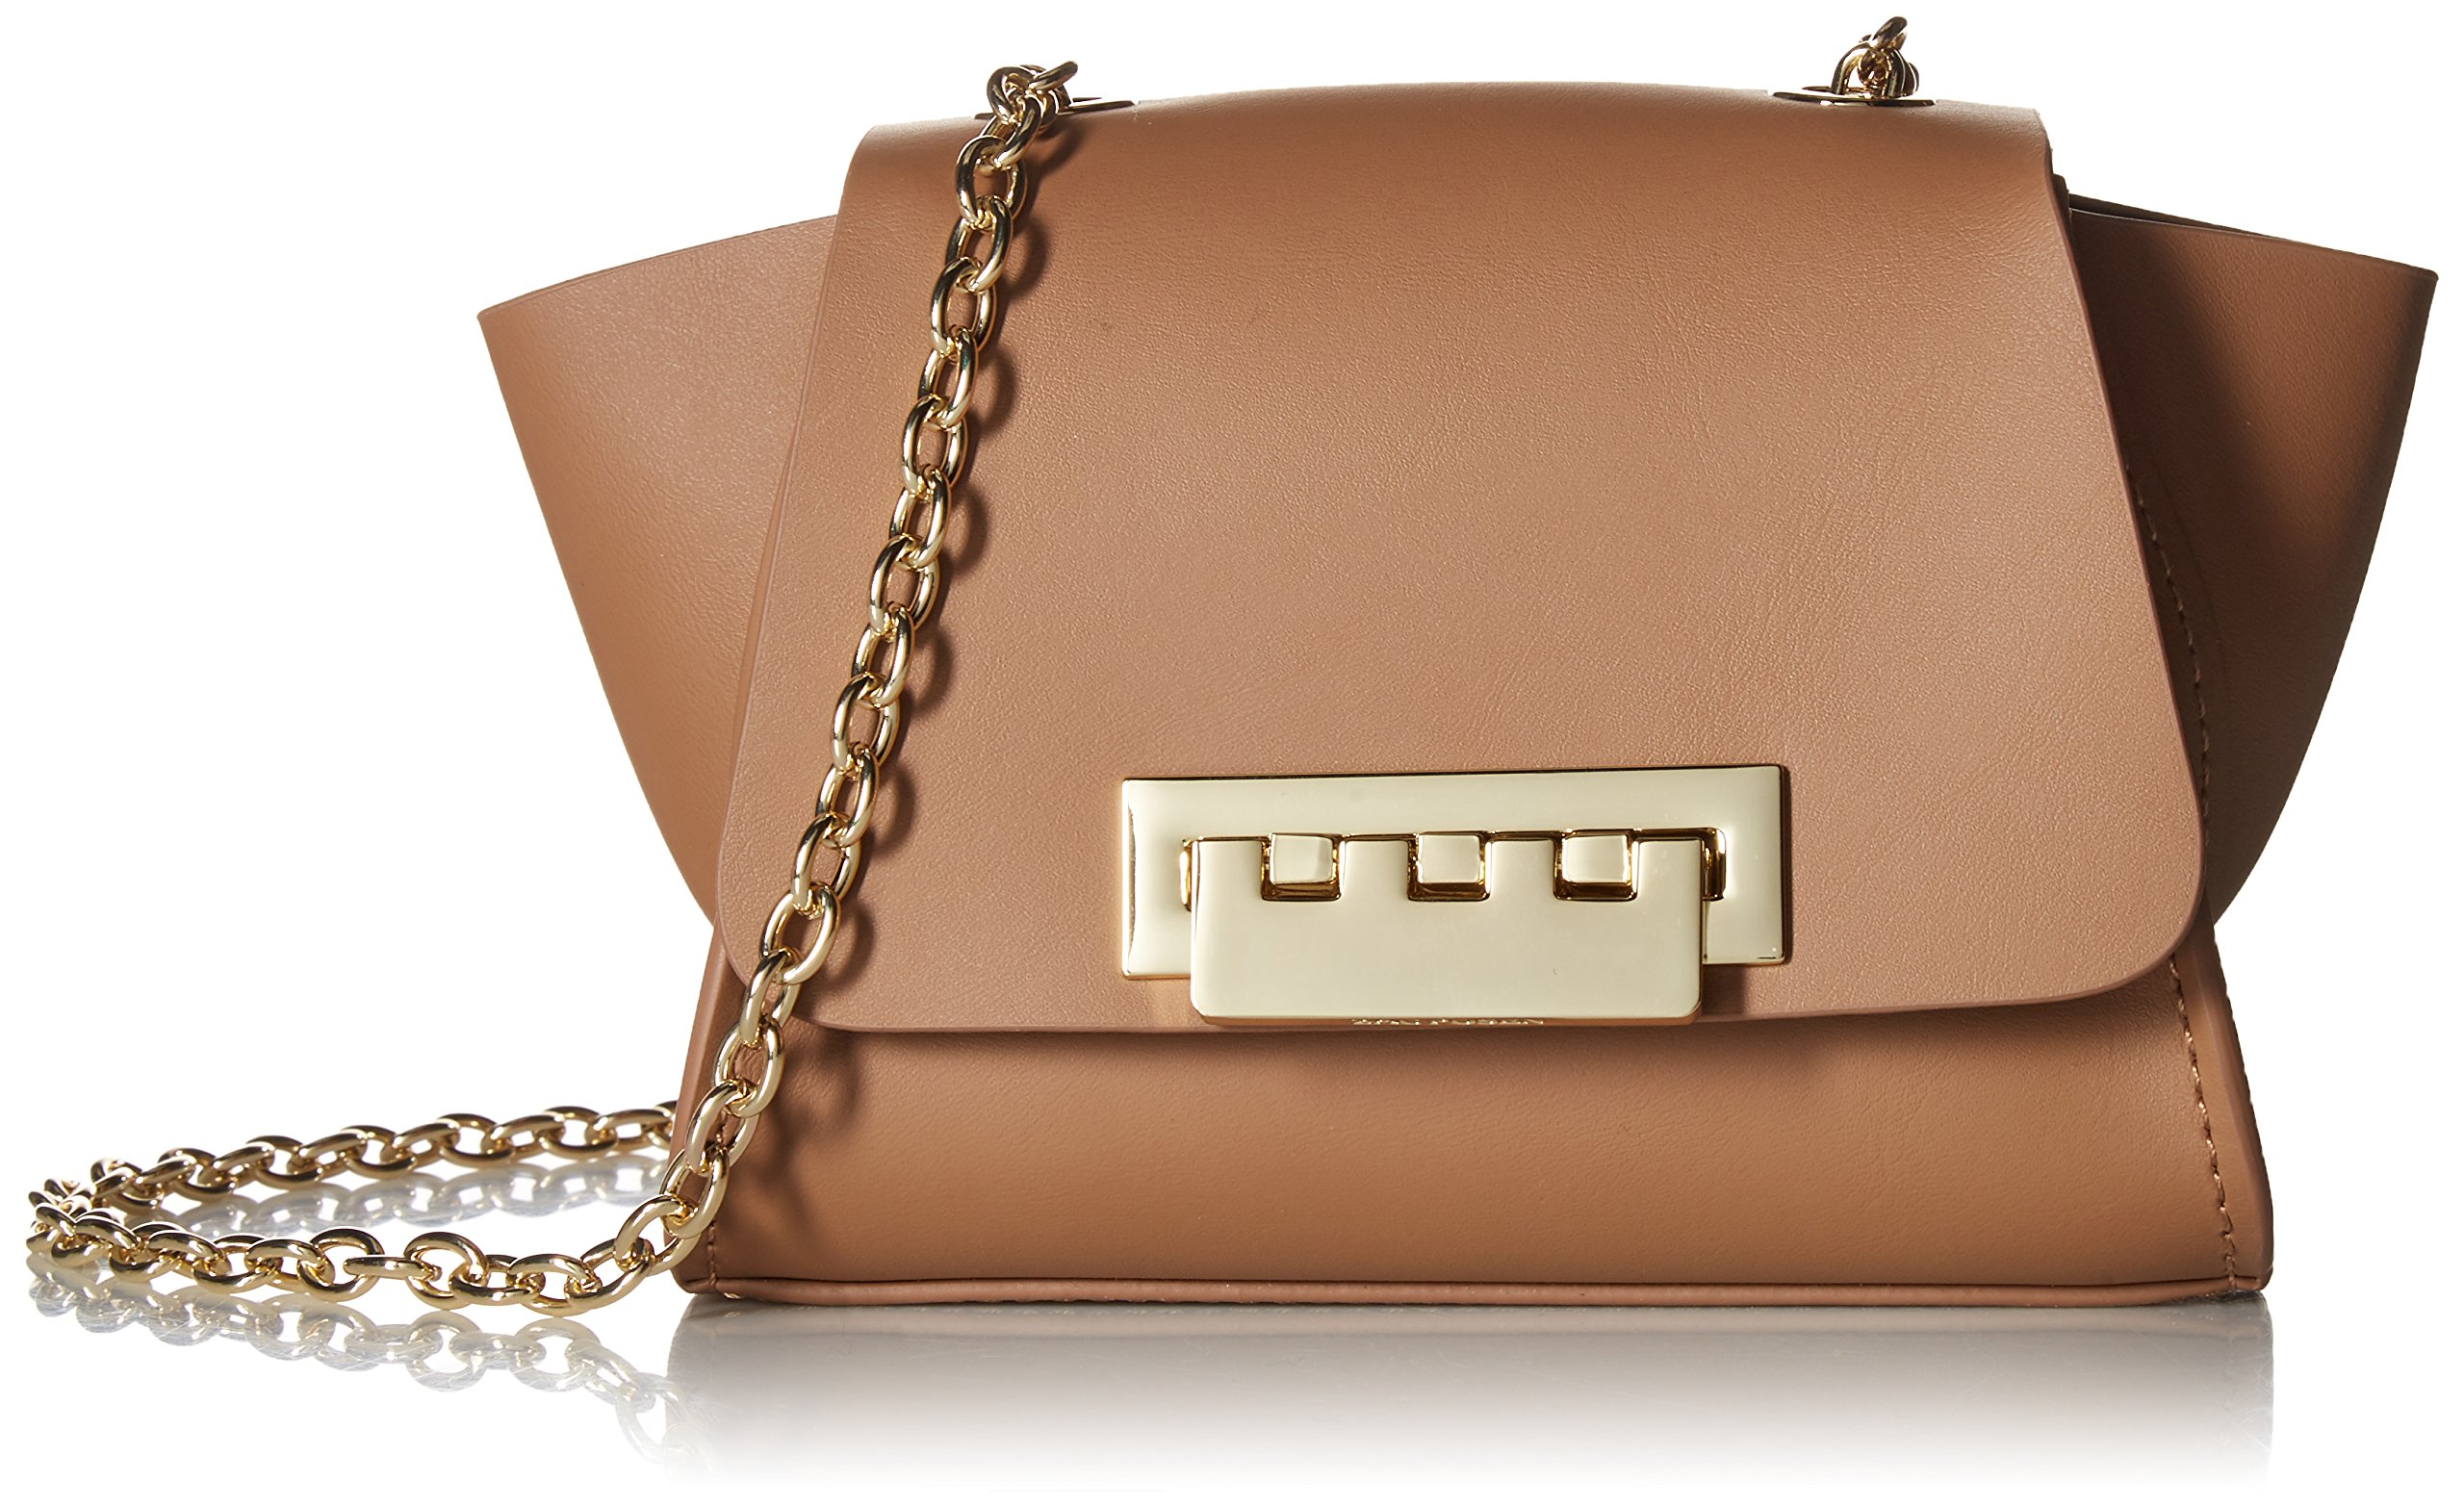 ZAC Zac Posen Eartha Mini Chain Crossbody Core, Nude by ZAC Zac Posen